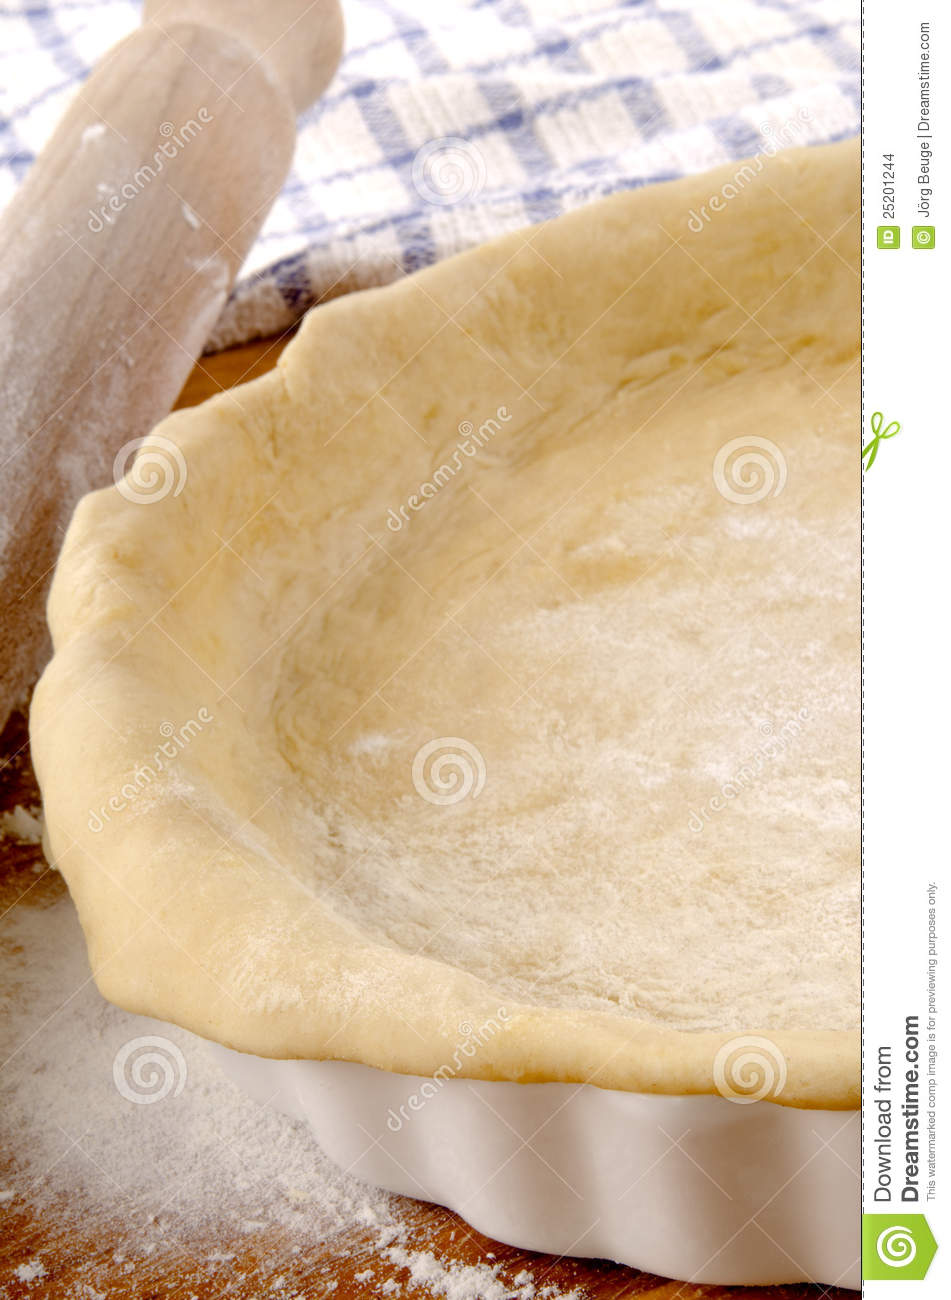 quiche dough is placed in a baking form stock images image 25201244. Black Bedroom Furniture Sets. Home Design Ideas